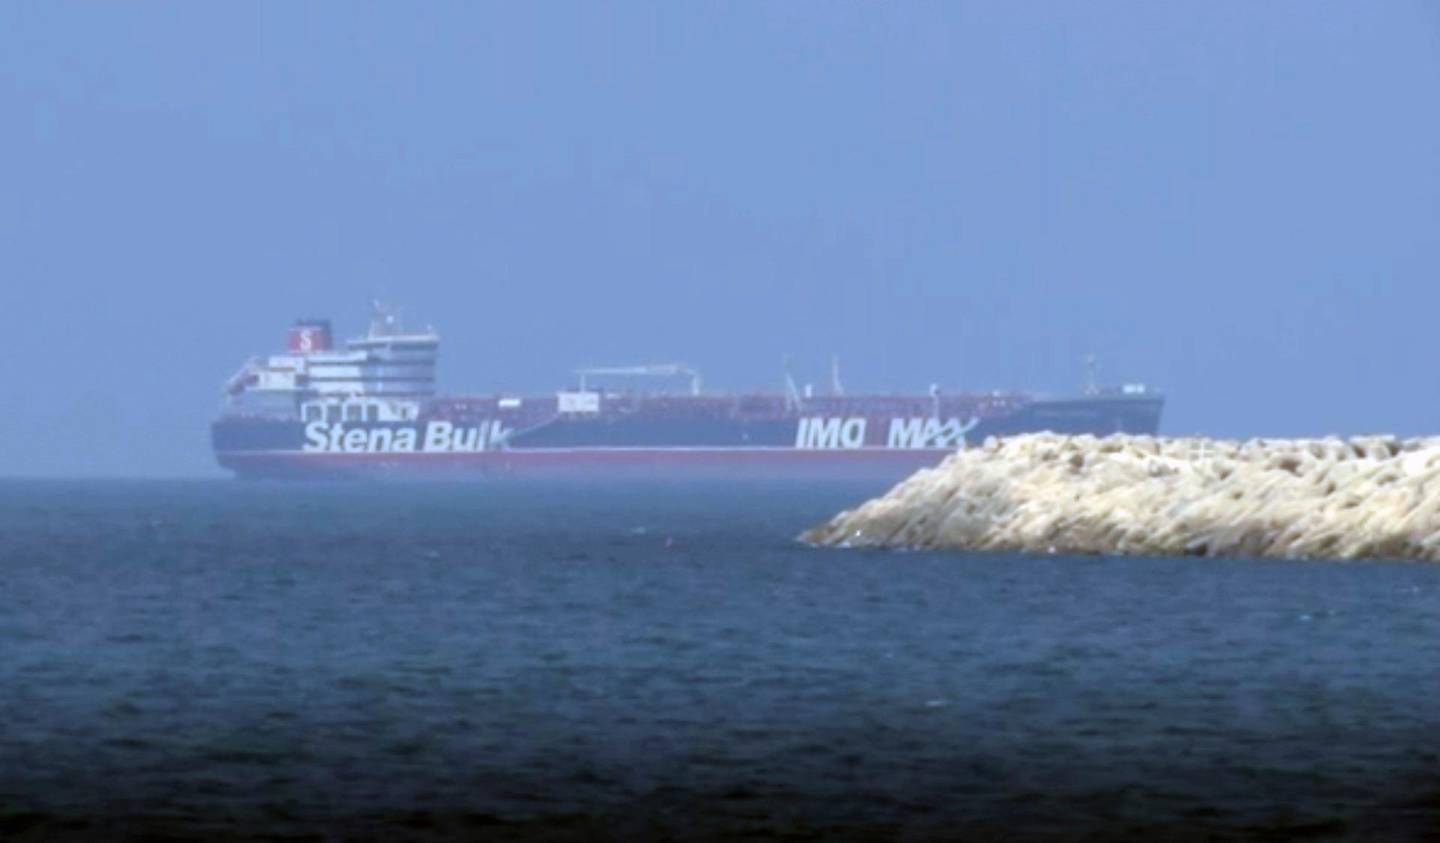 In this image made from video, the British-flagged oil tanker Stena Impero is seen outside Port Rashid in Dubai, United Arab Emirates, Saturday, Sept. 28, 2019.  On Friday, Iran released the Stena Impero which it had seized in July as it passed through the Strait of Hormuz, the narrow mouth of the Persian Gulf through which 20% of all oil passes. The ship set sail from Iran Friday morning, arriving at an anchorage outside Dubai's Port Rashid in the United Arab Emirates just before midnight. (AP Photo)